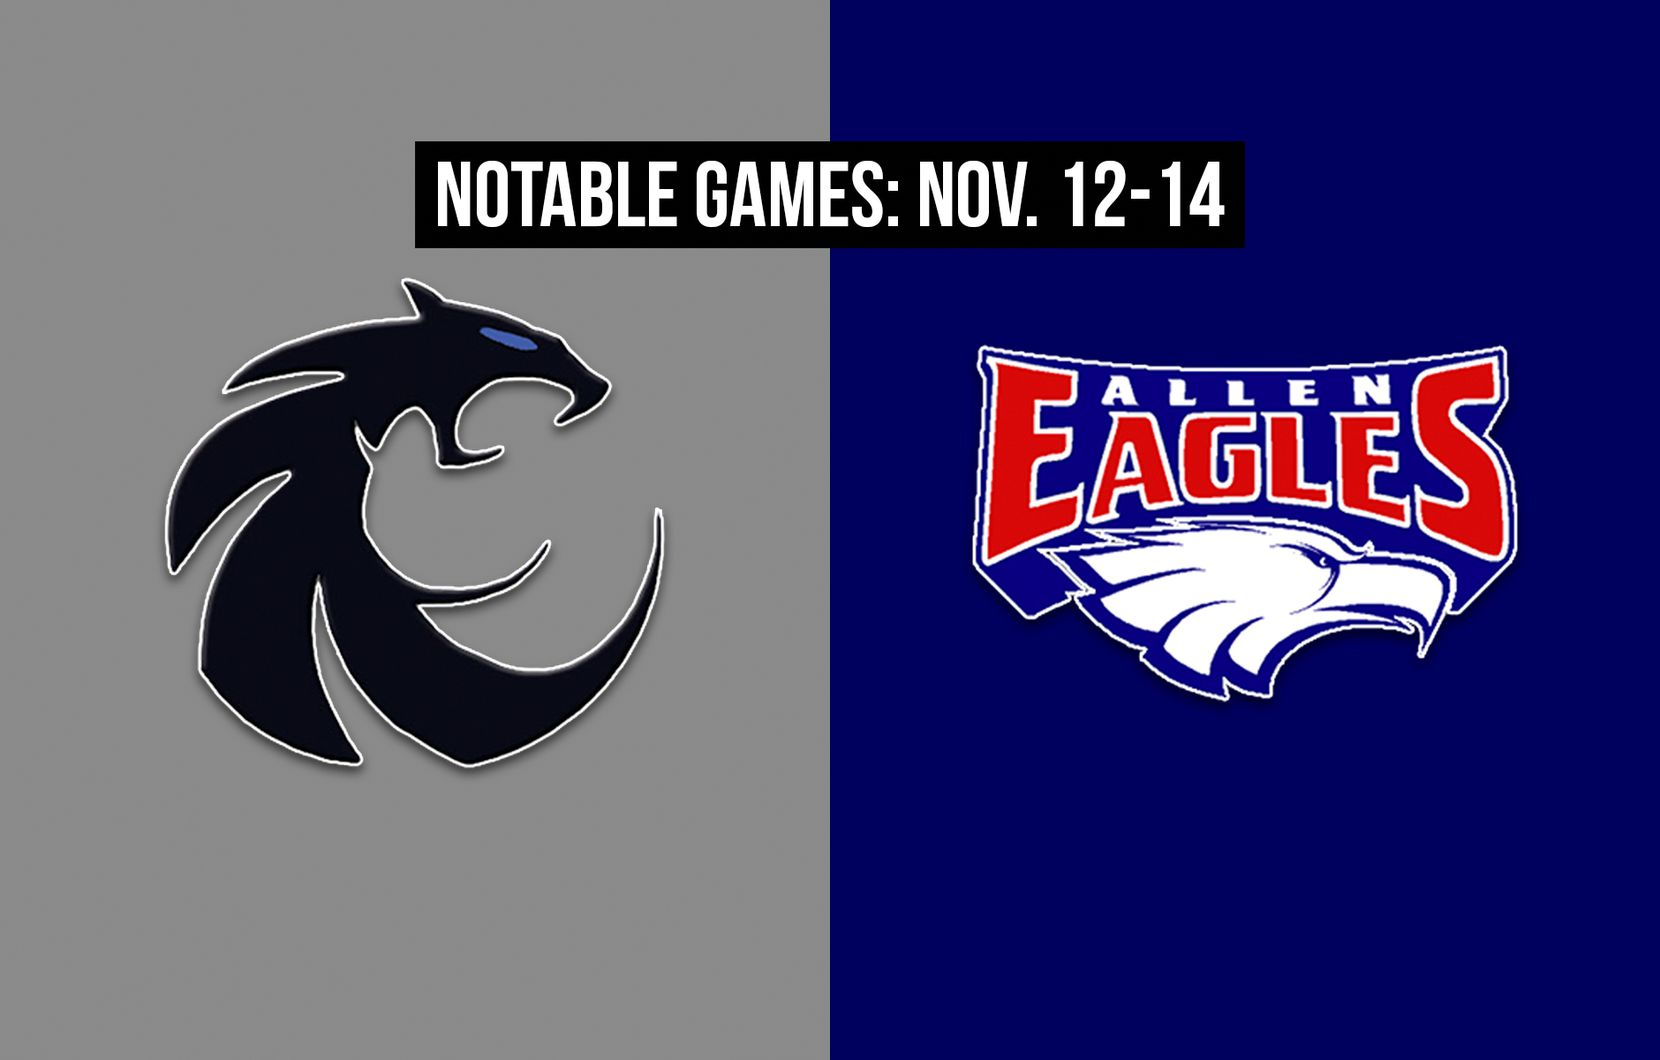 Notable games for the week of Nov. 12-14 of the 2020 season: Denton Guyer vs. Allen.